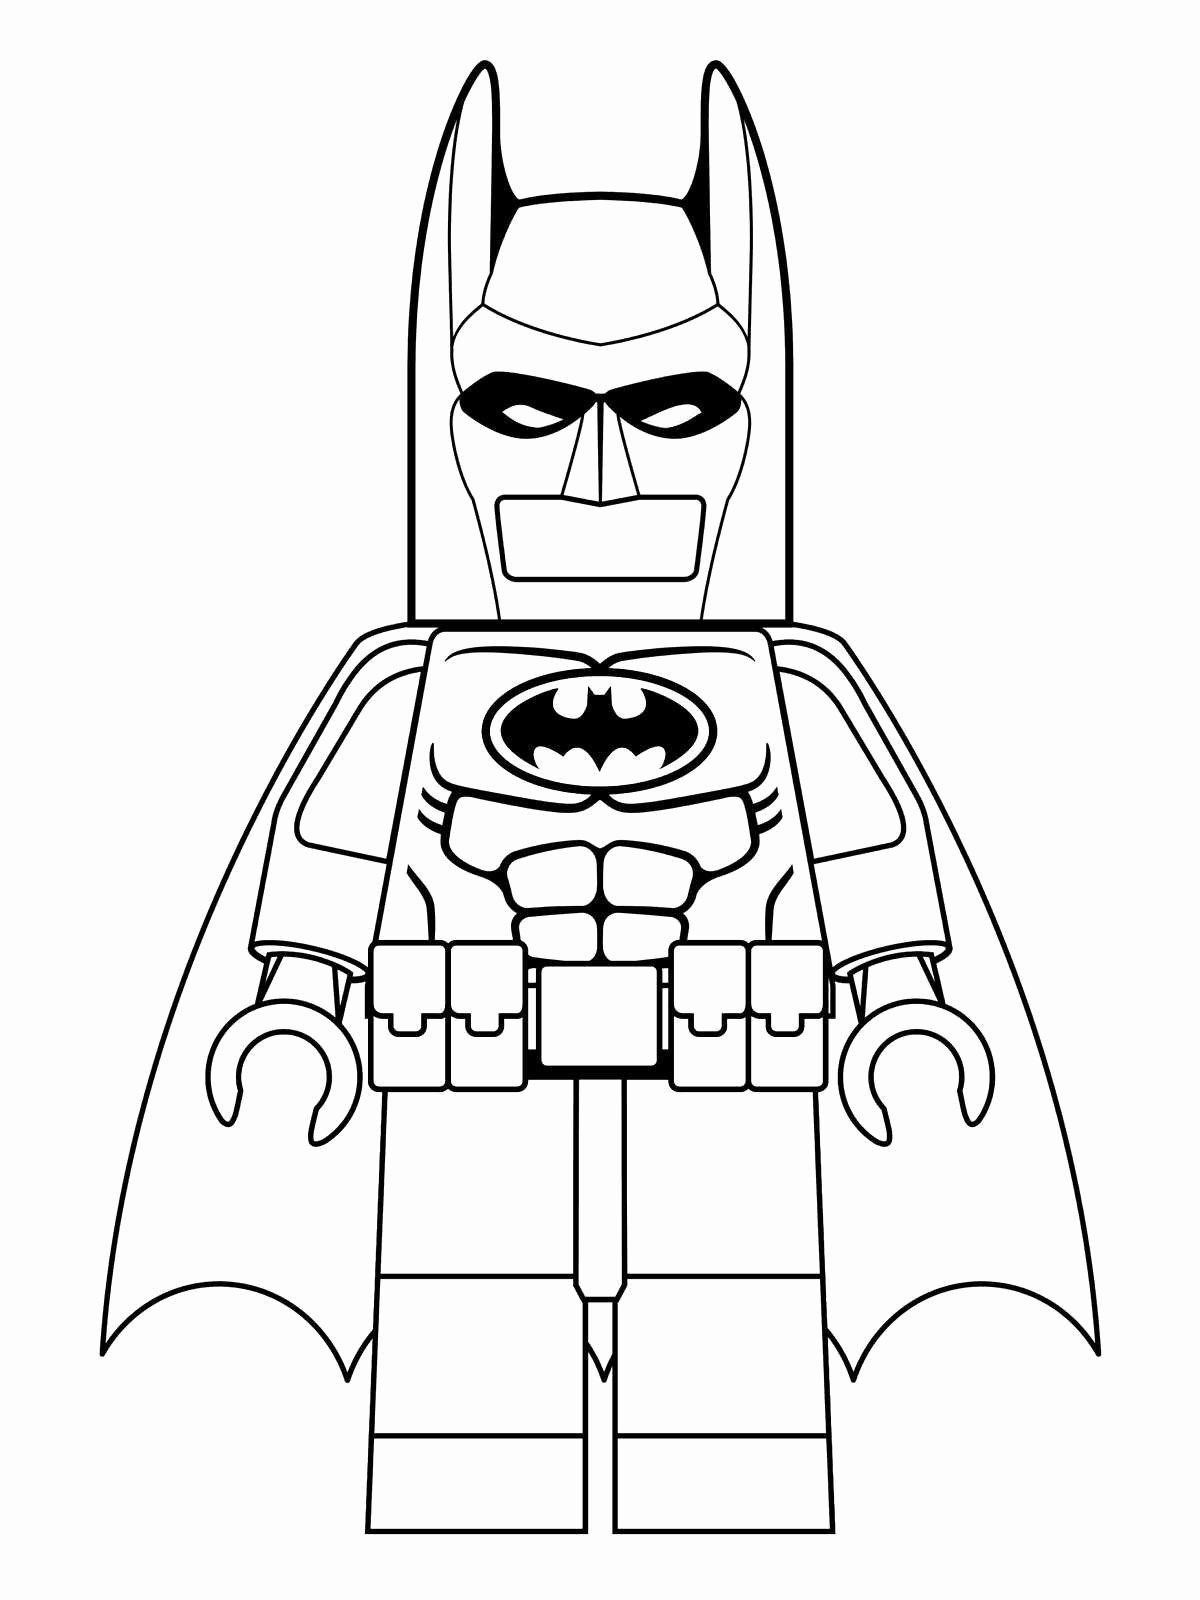 Batman And Robin Coloring Pages Lego Batman And Robin Printable Dc Ics Super Heroes Lego In 2020 Lego Movie Coloring Pages Lego Coloring Pages Superhero Coloring